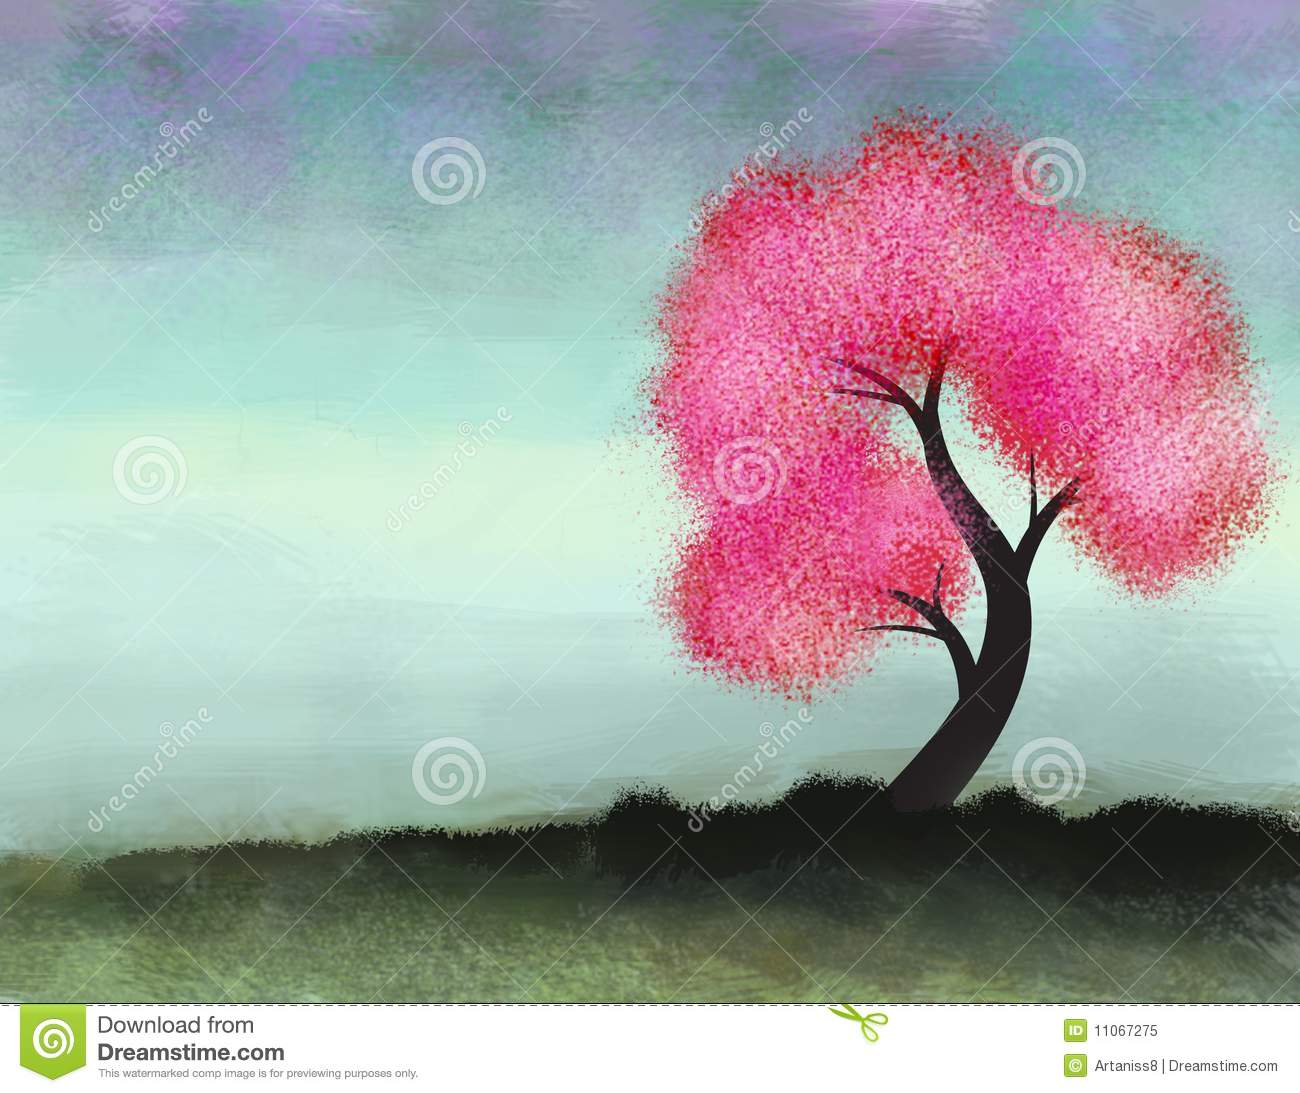 pink tree royalty free stock photo - Pink Trees